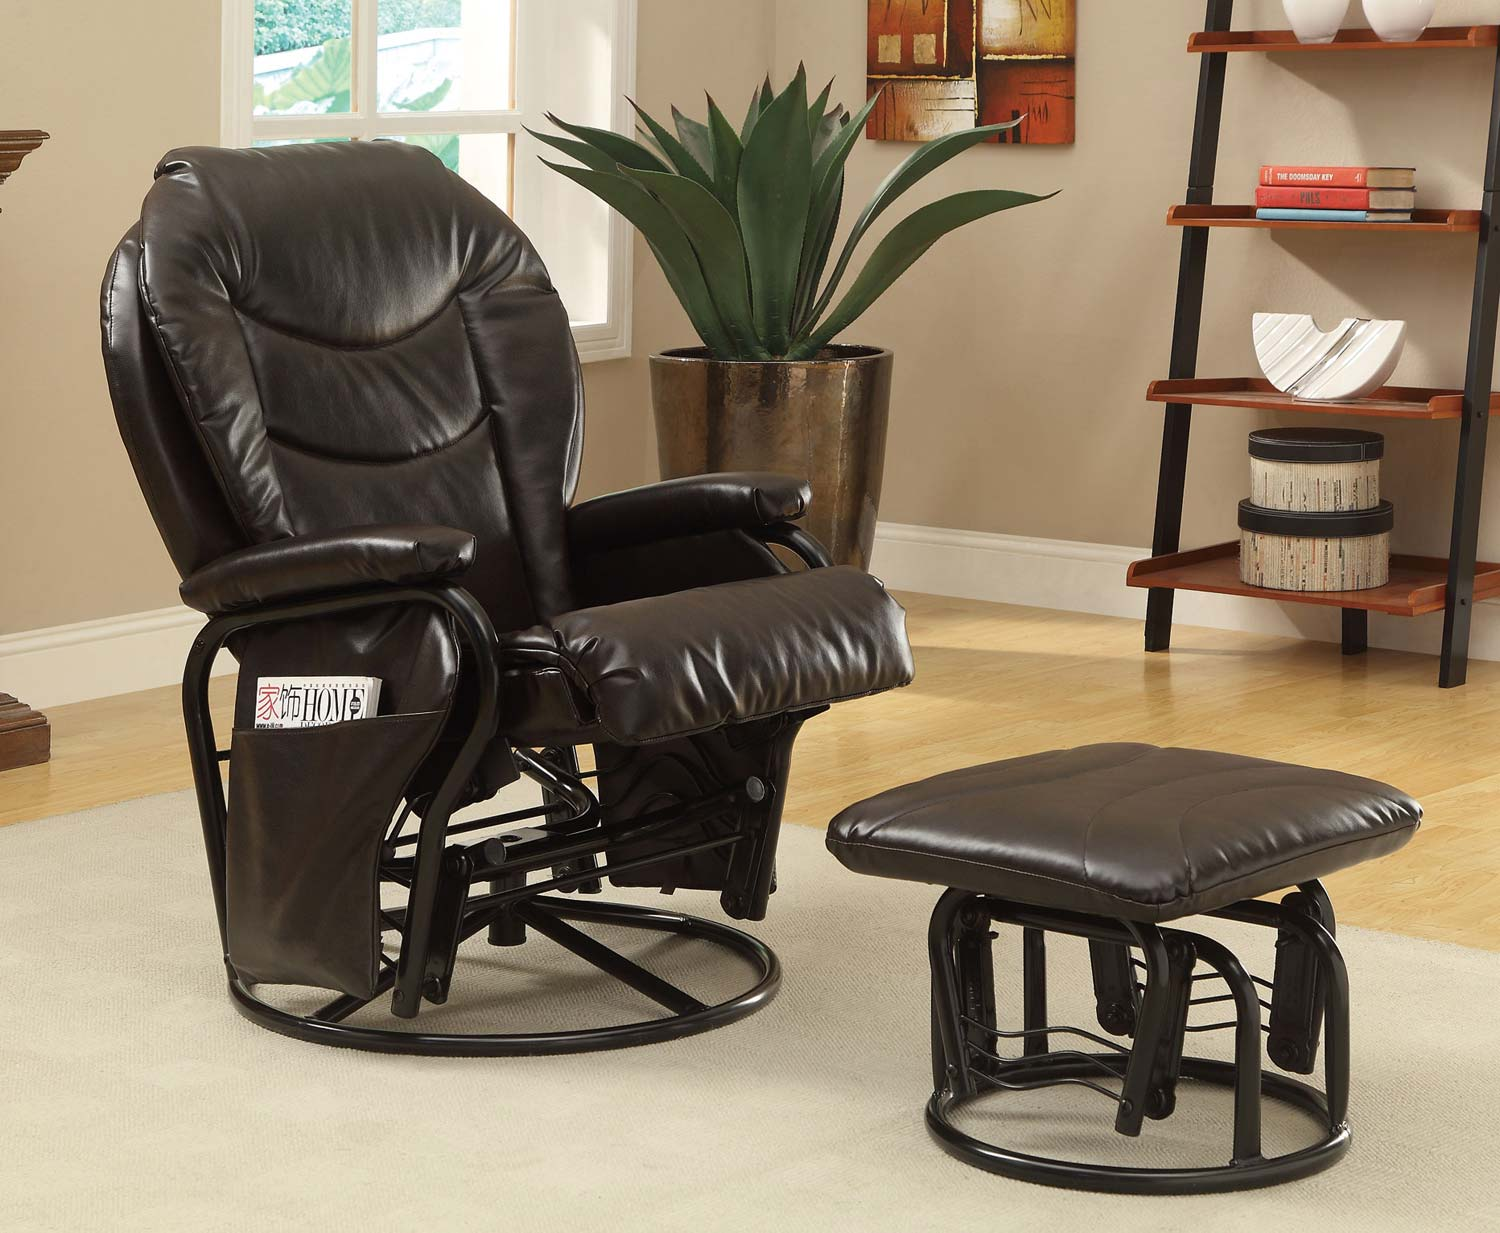 childcare glider rocker chair ottoman comfortable outdoor coaster 600295 set brown at